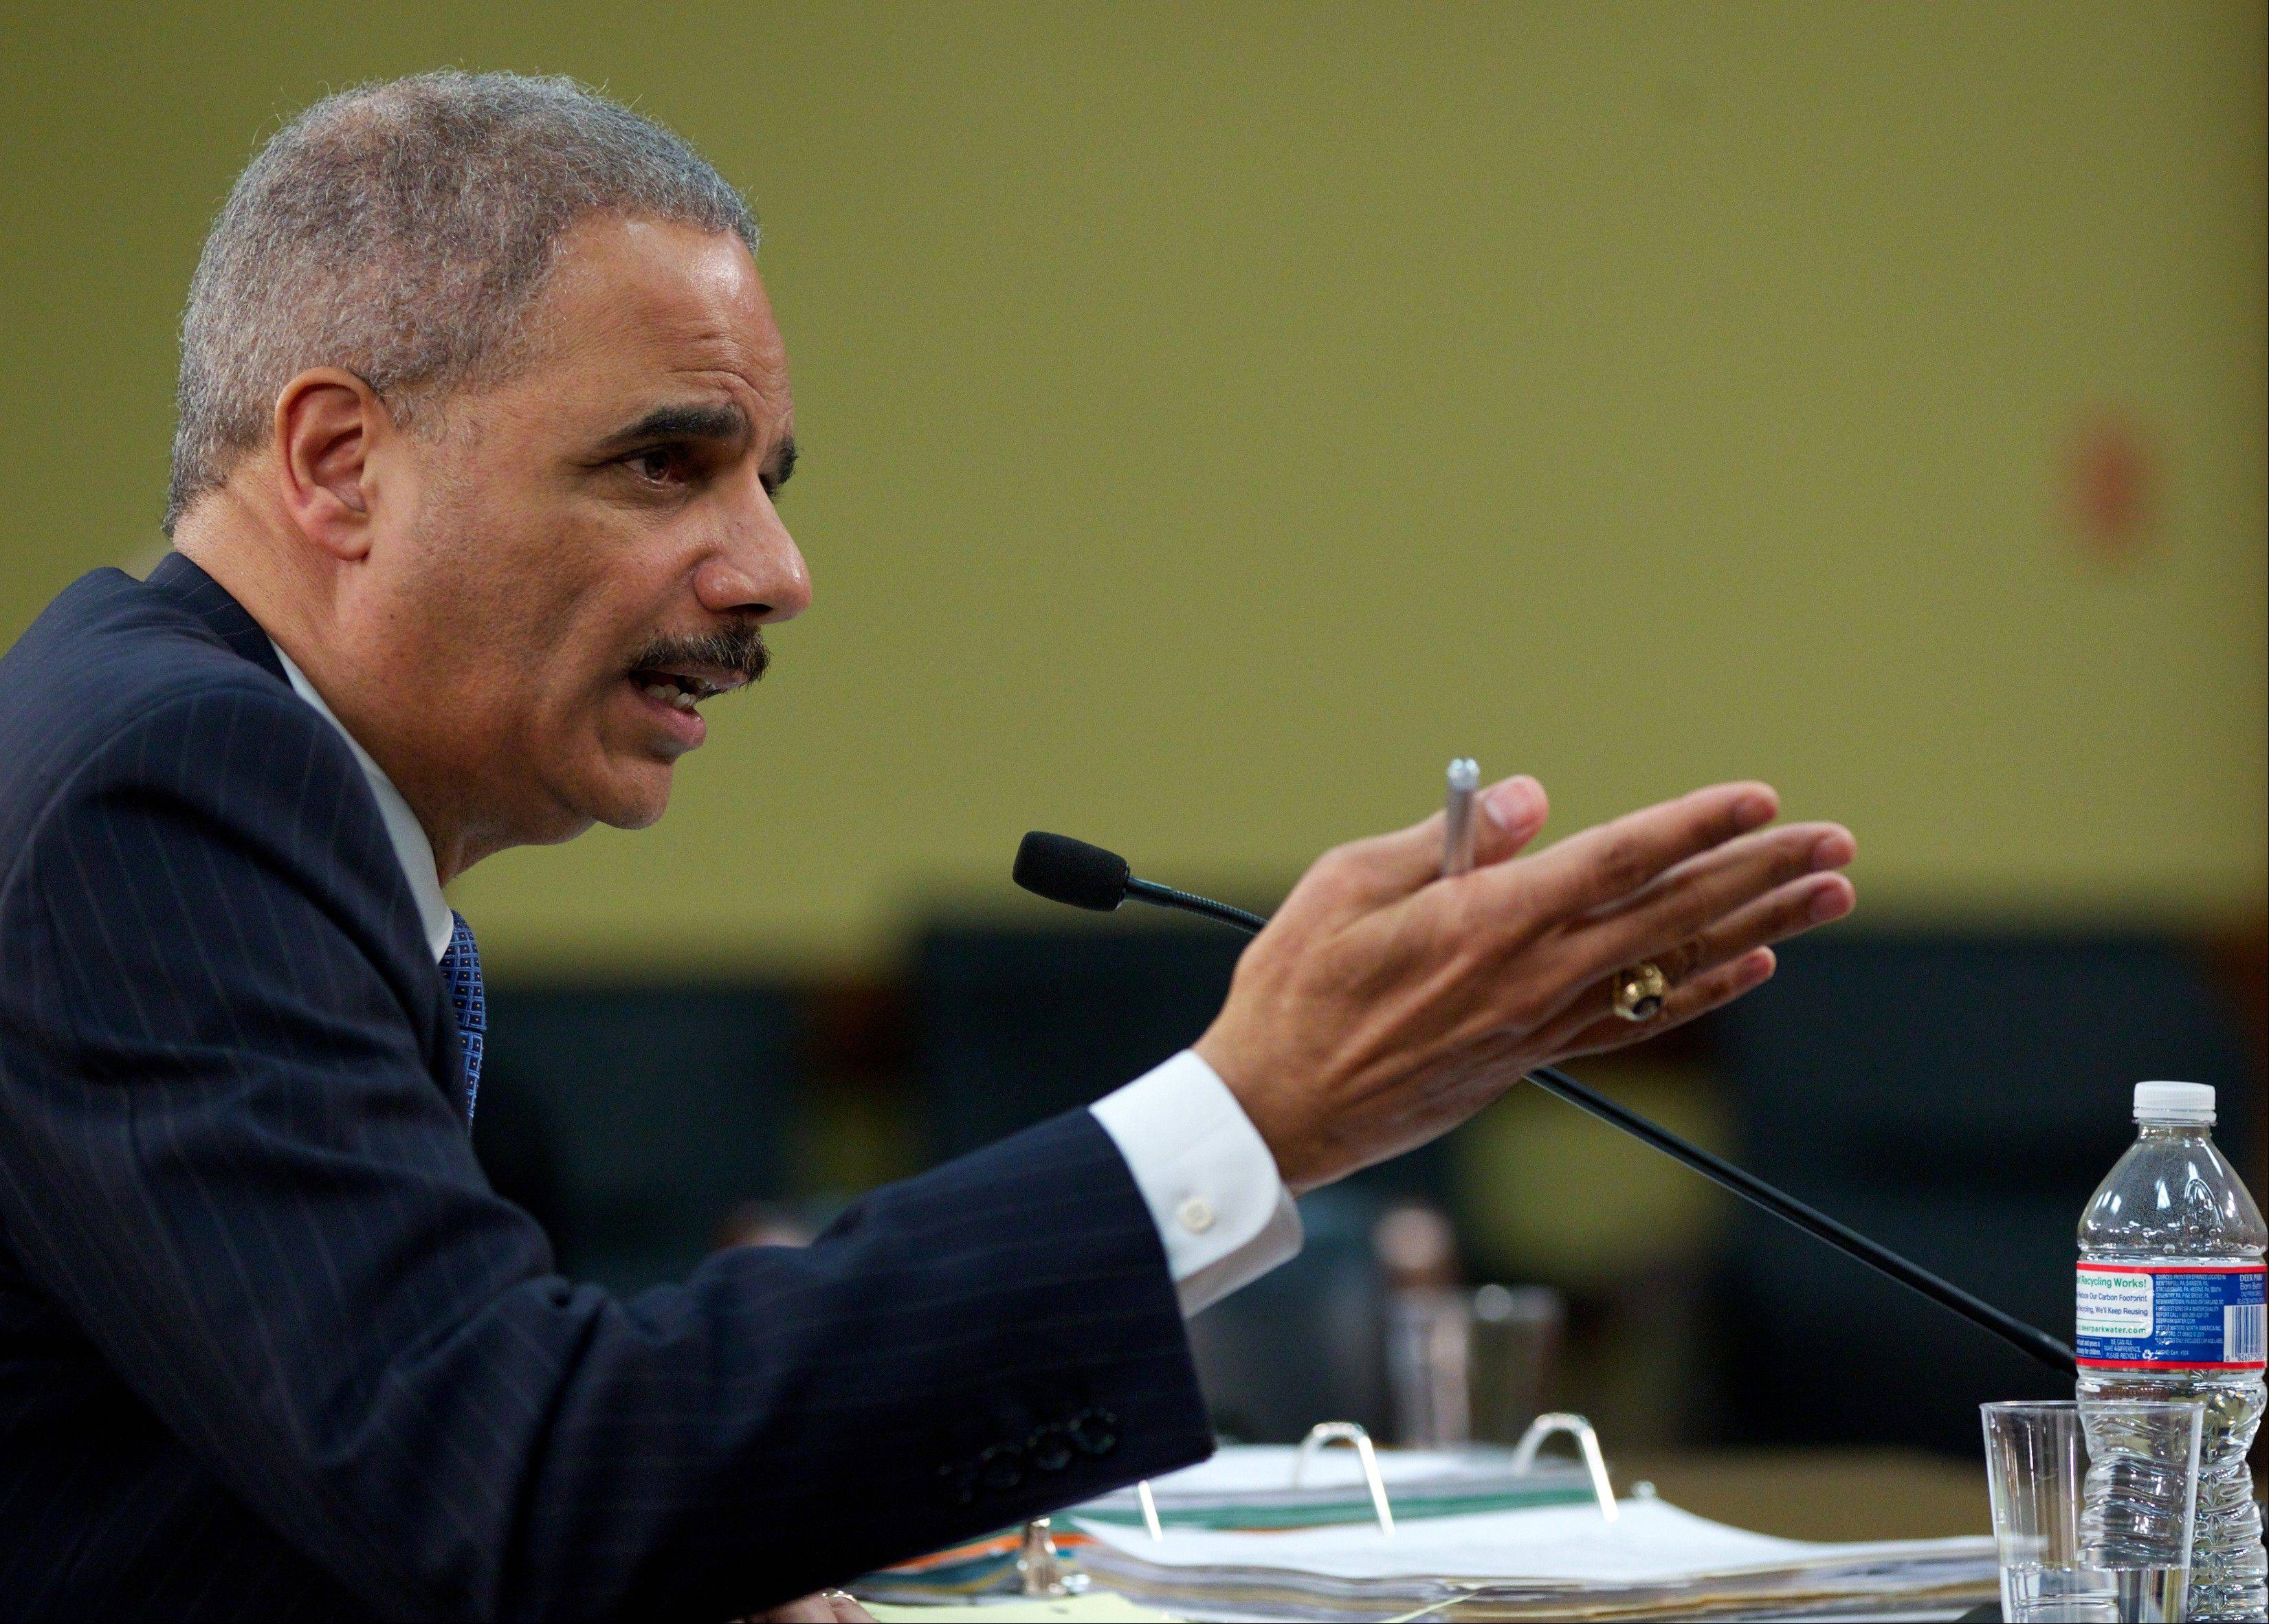 In this April 18, 2013 file photo, Attorney General Eric Holder testifies on Capitol Hill in Washington. The Justice Department has secretly obtained two months of telephone records of journalists for The Associated Press in what AP's top executive says is an unprecedented intrusion into newsgathering.